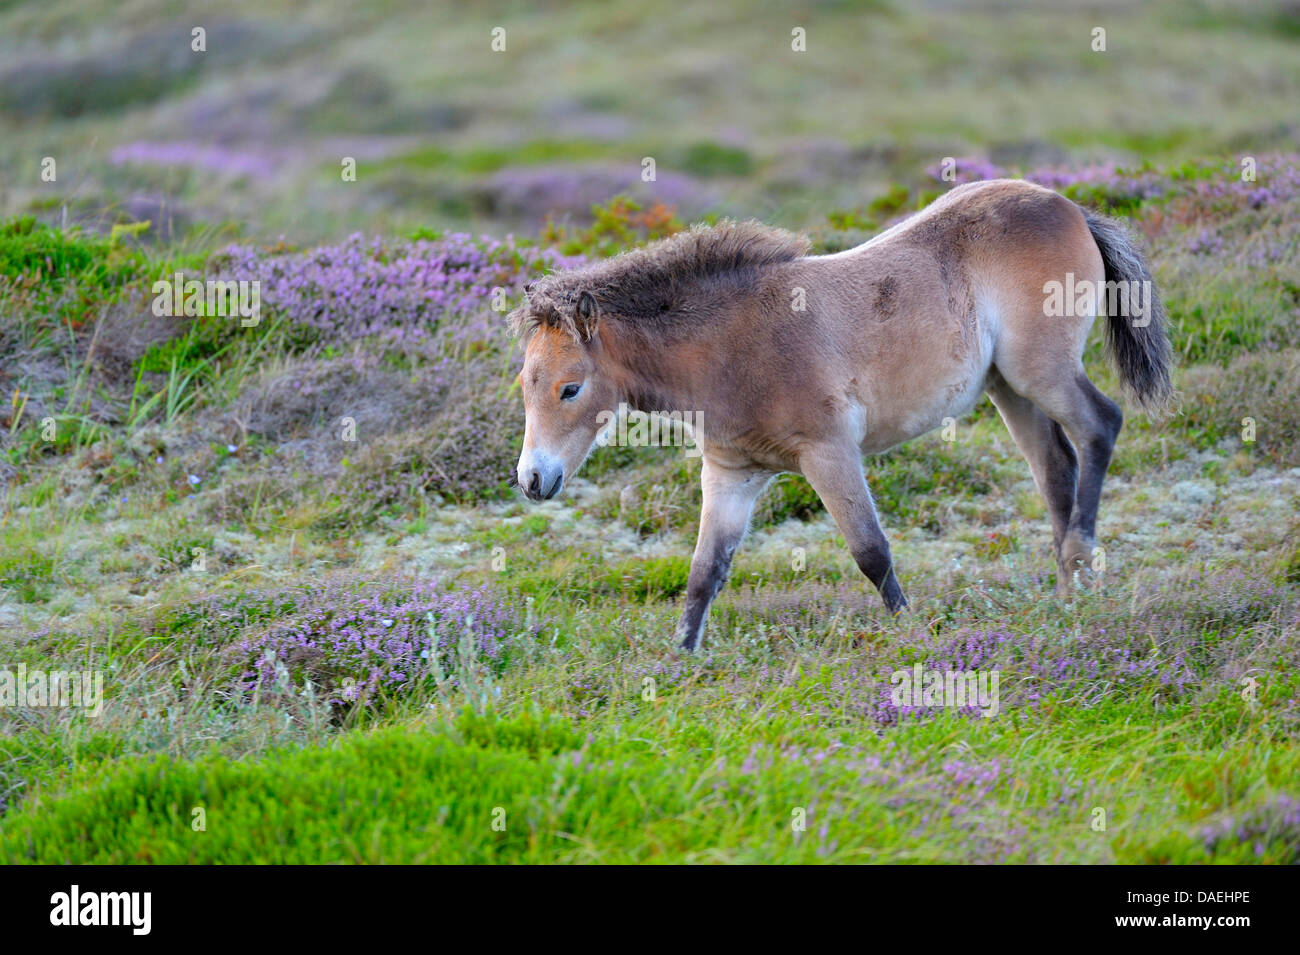 Exmoor pony (Equus przewalskii f. caballus), foal in the conservation area at blooming heath, Netherlands, Texel, - Stock Image